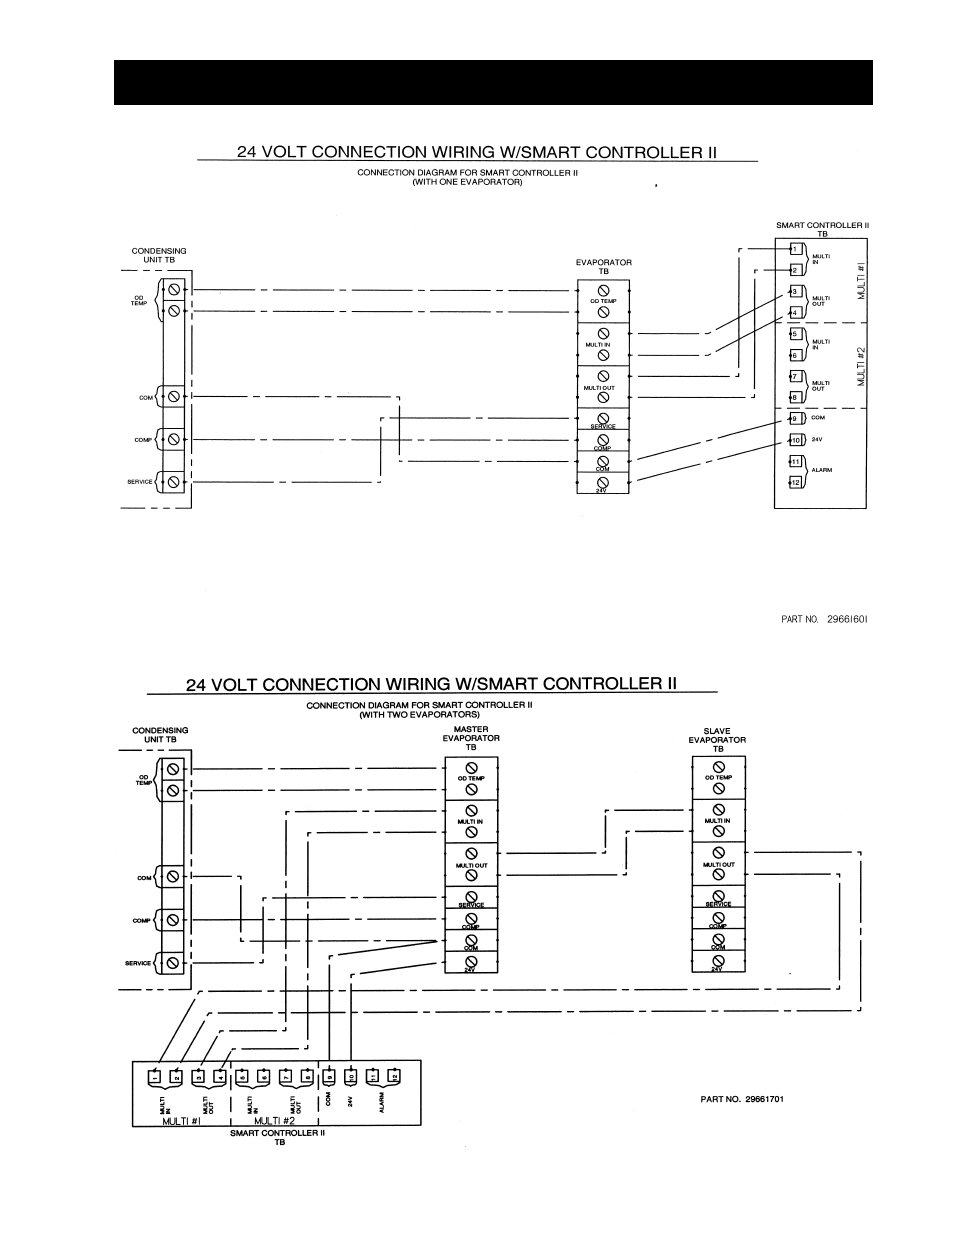 refrigeration control wiring diagram